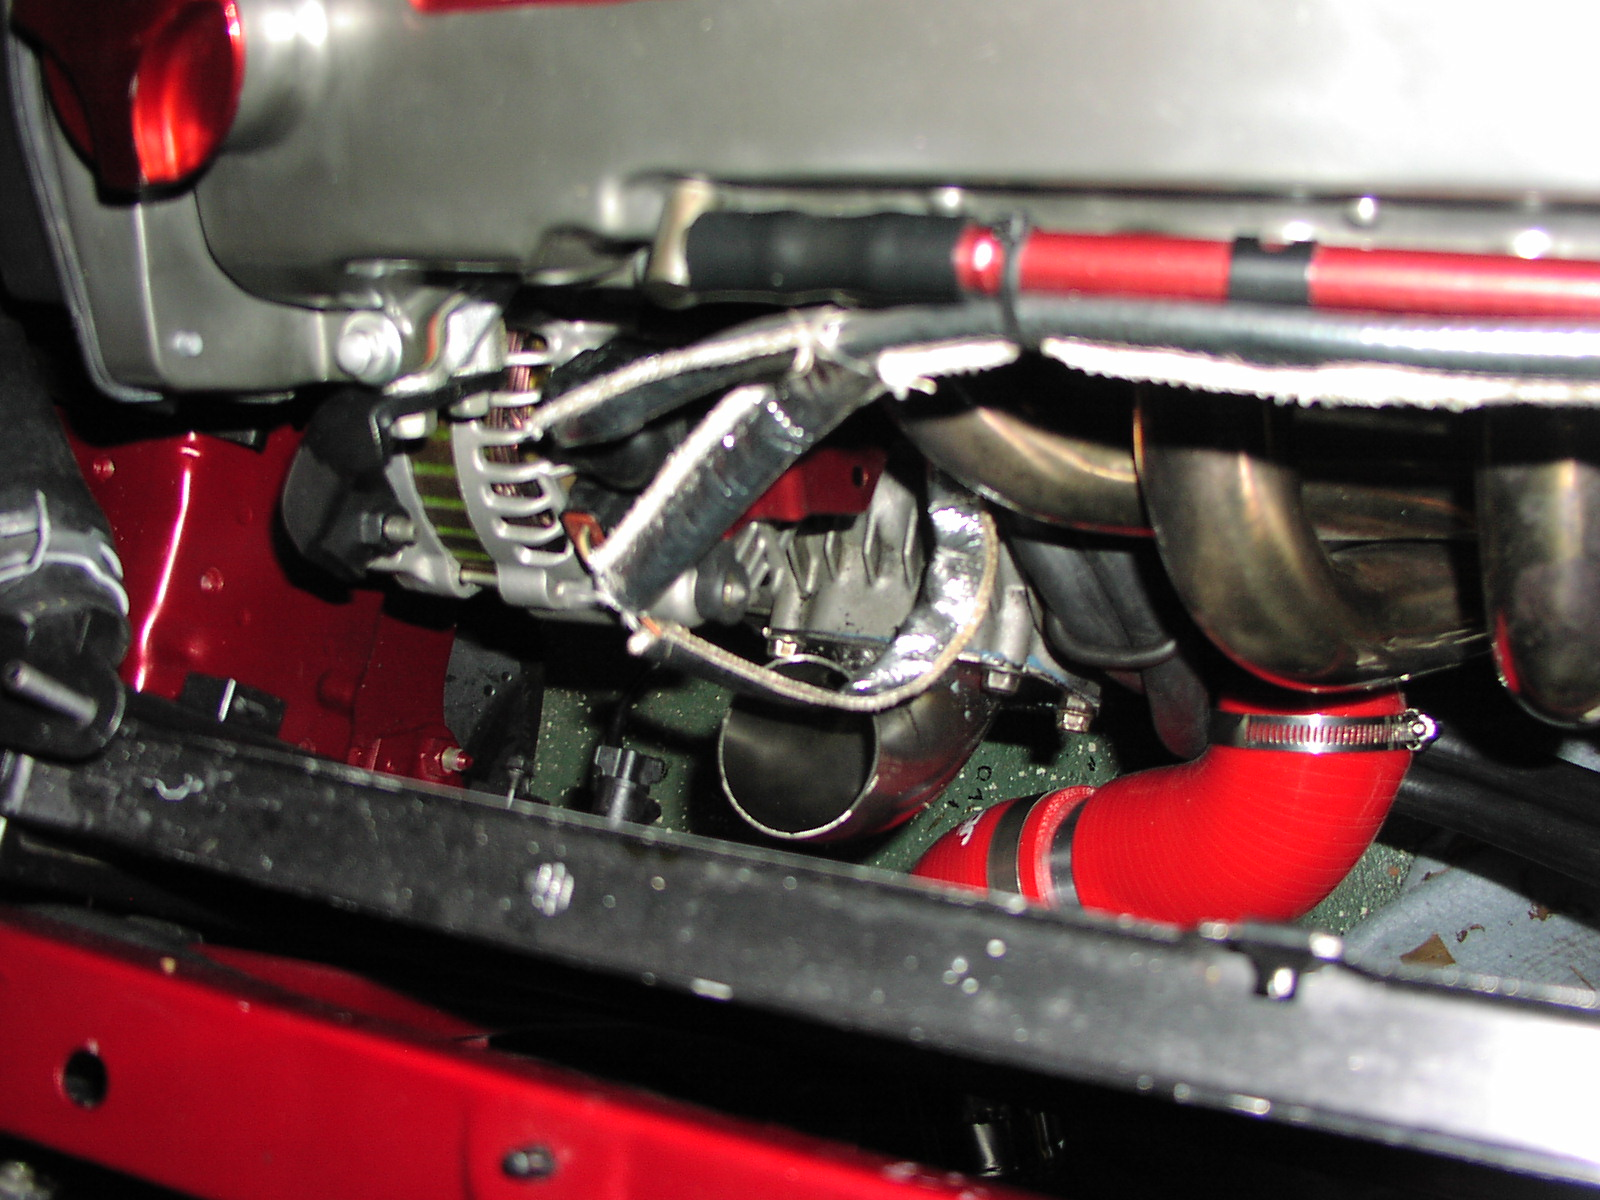 super charger pipe work - 19026582